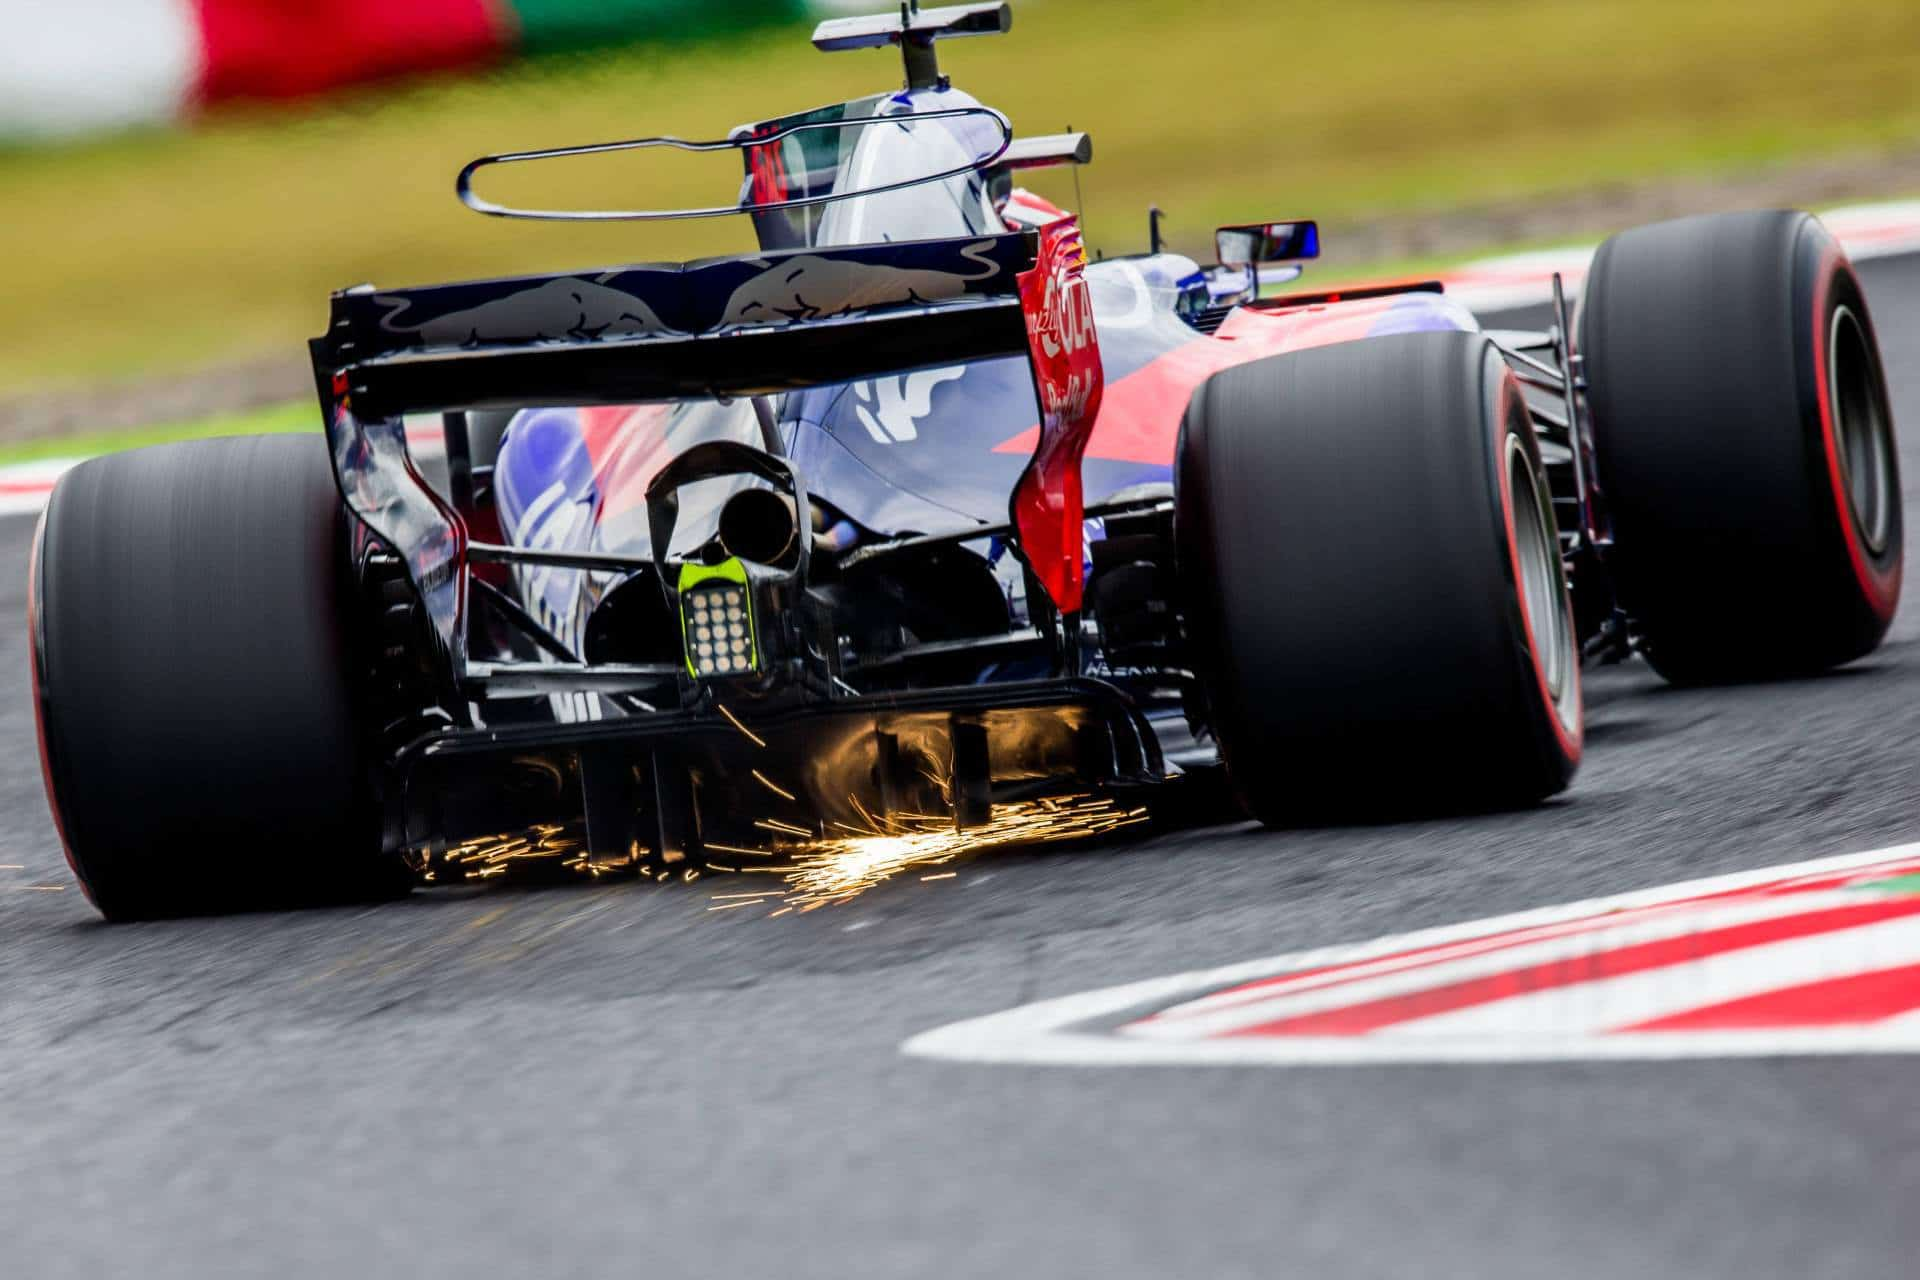 Gasly Toro Rosso Japanese GP F1 2017 Suzuka Photo Red Bull